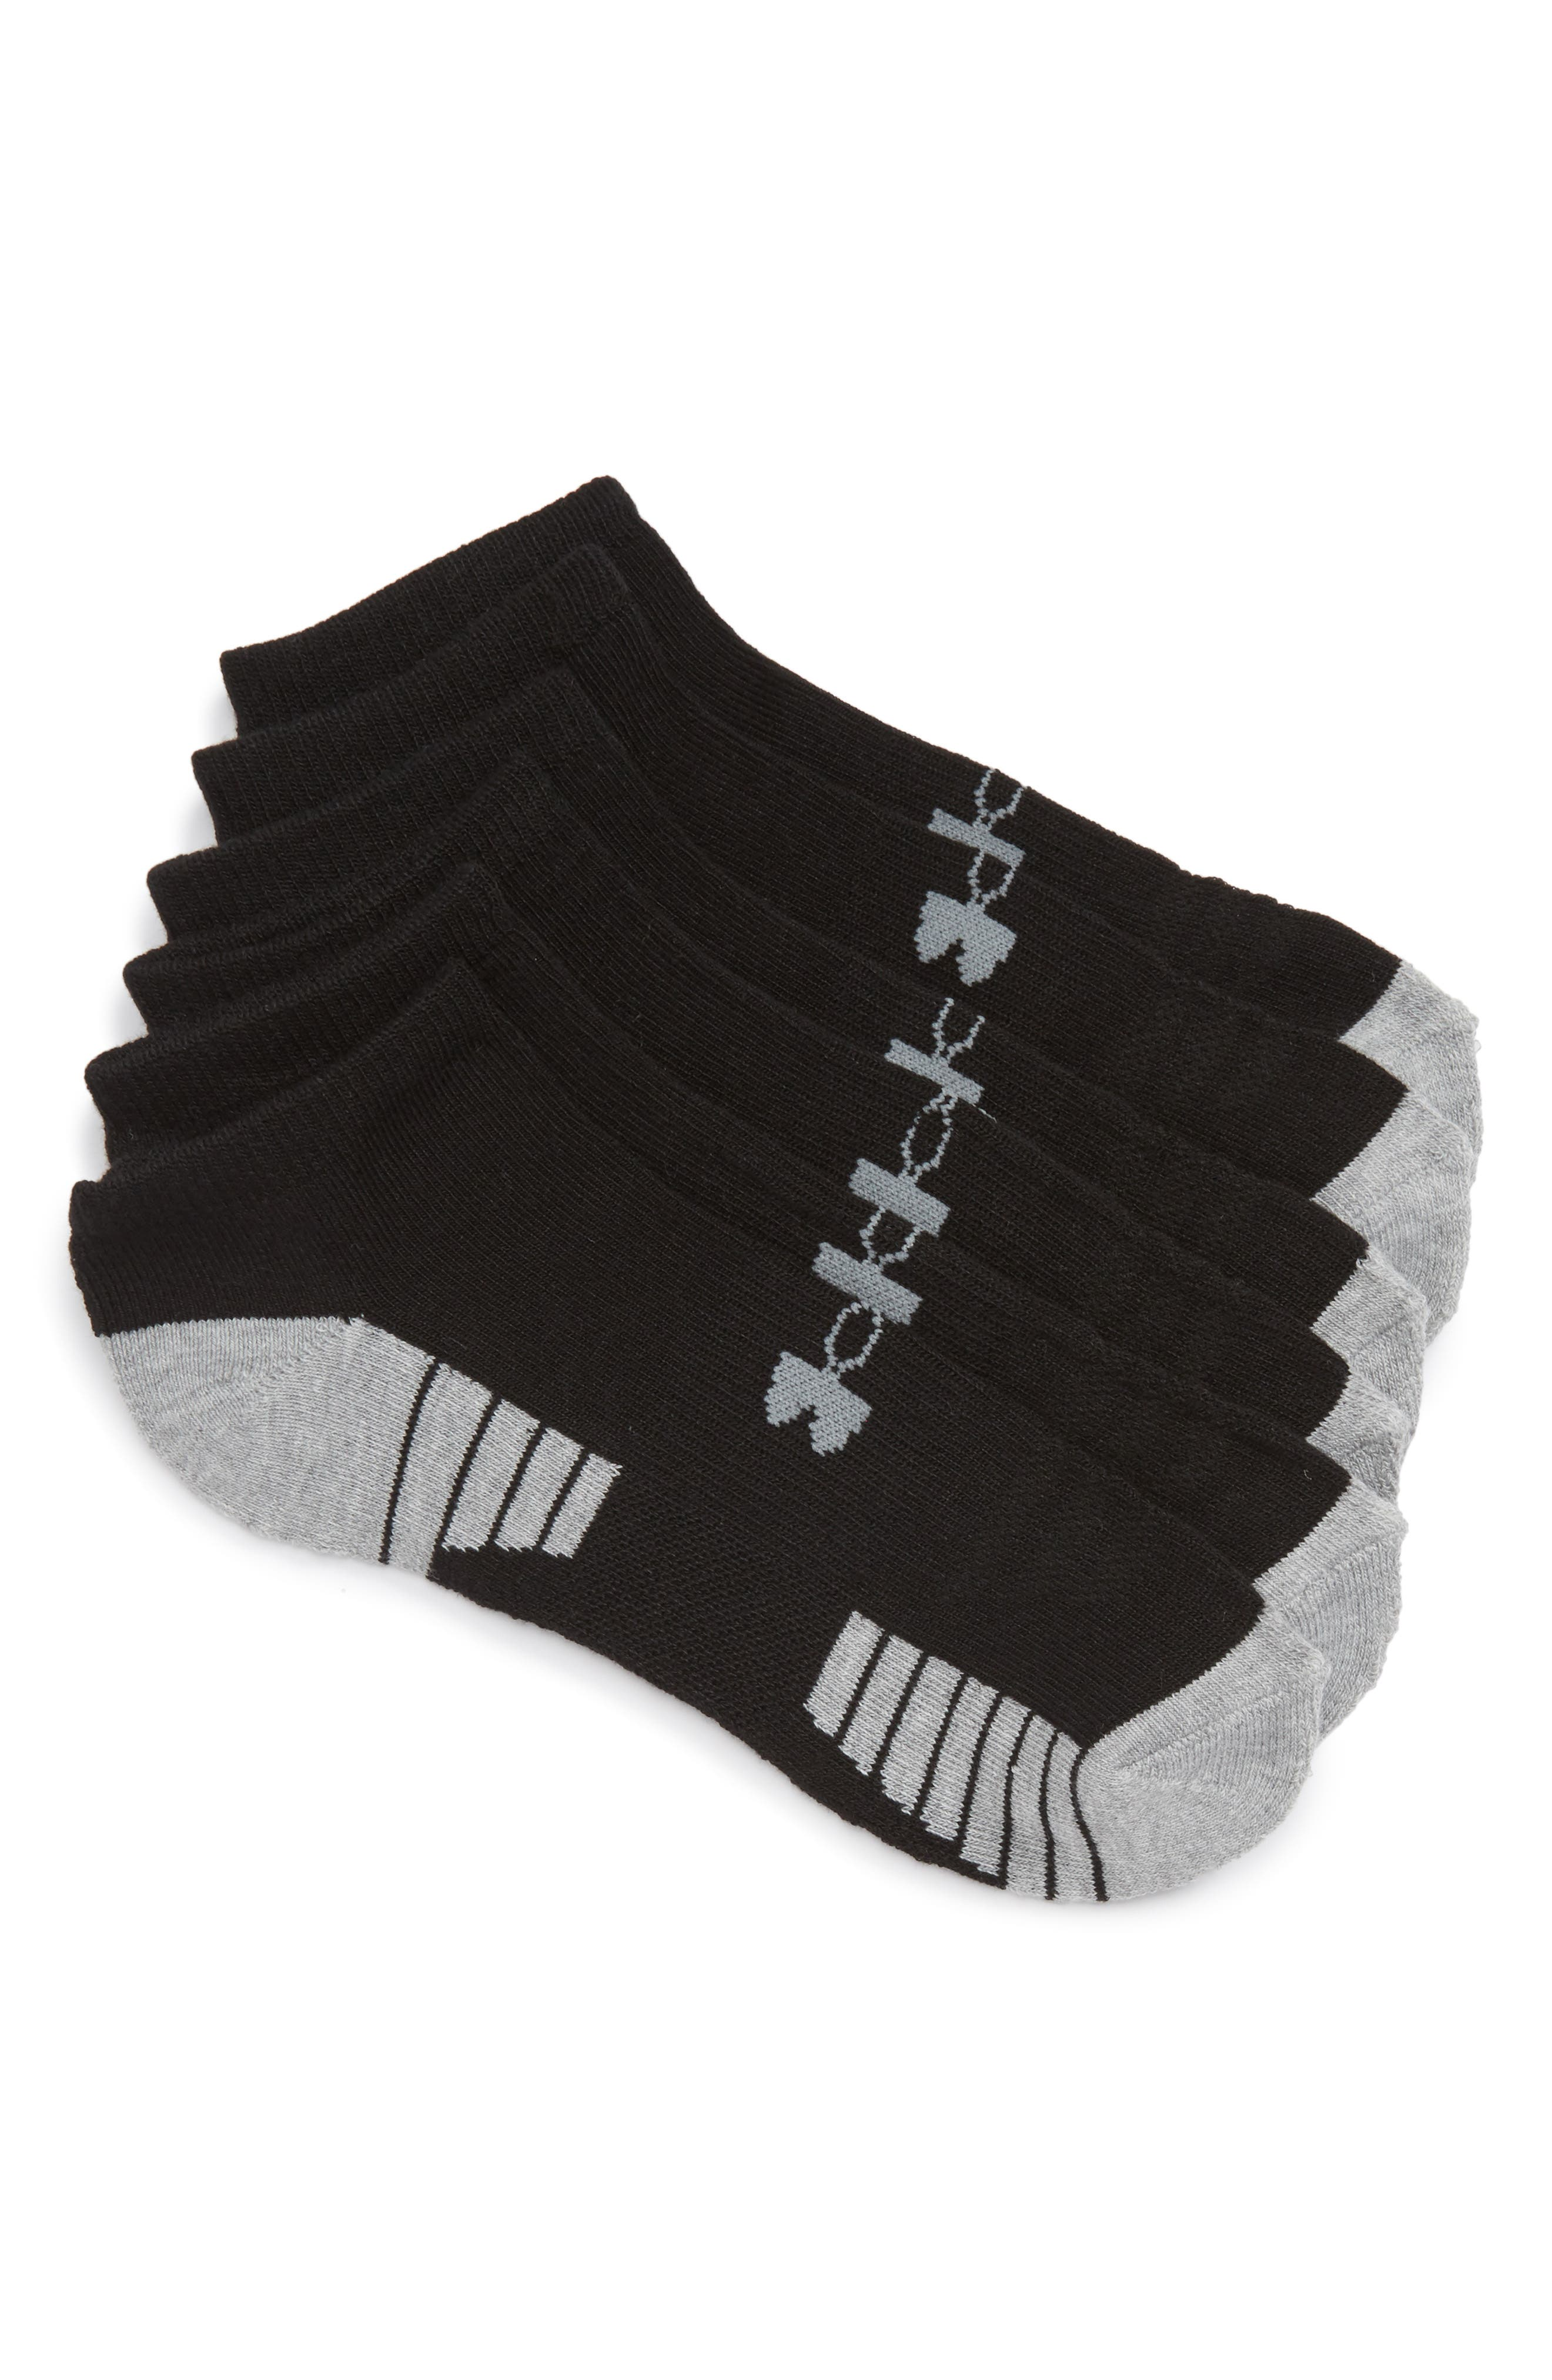 Alternate Image 1 Selected - Under Armour HeatGear 3-Pack No-Show Socks